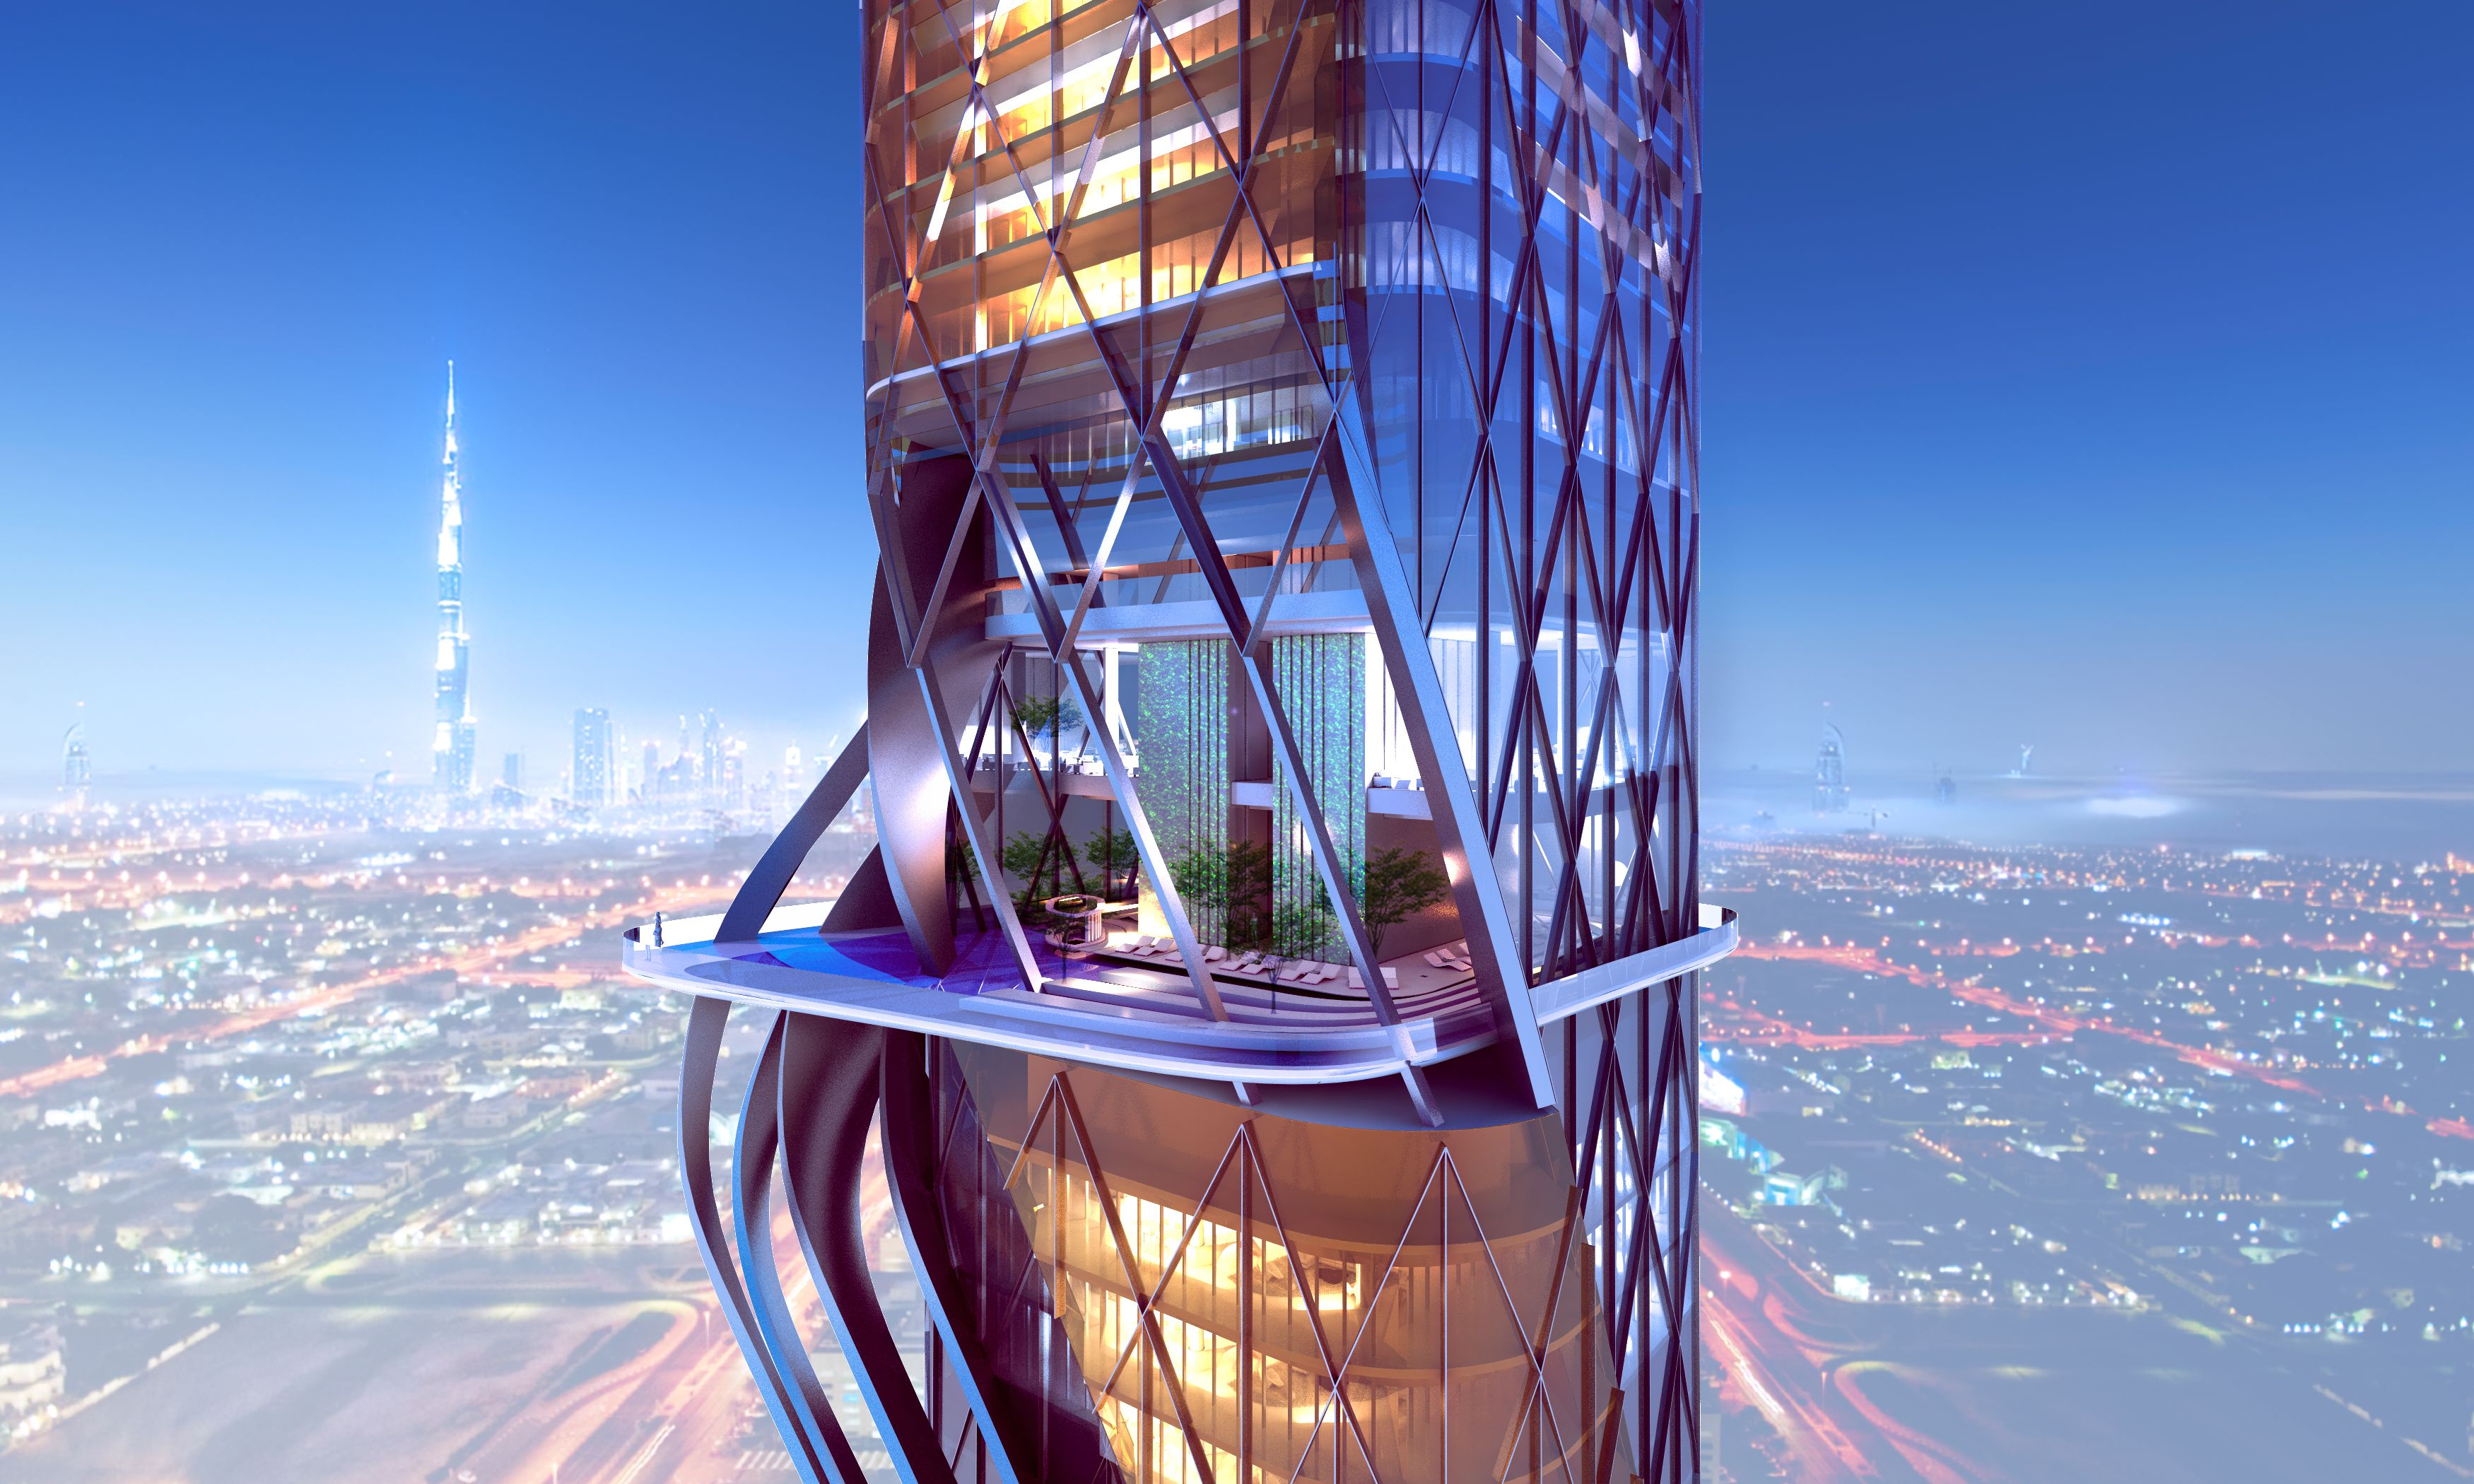 New Dubai Towers Will Have Indoor Rainforest And Manmade Beach New Dubai Towers Will Have Indoor Rainforest And Manmade Beach new photo